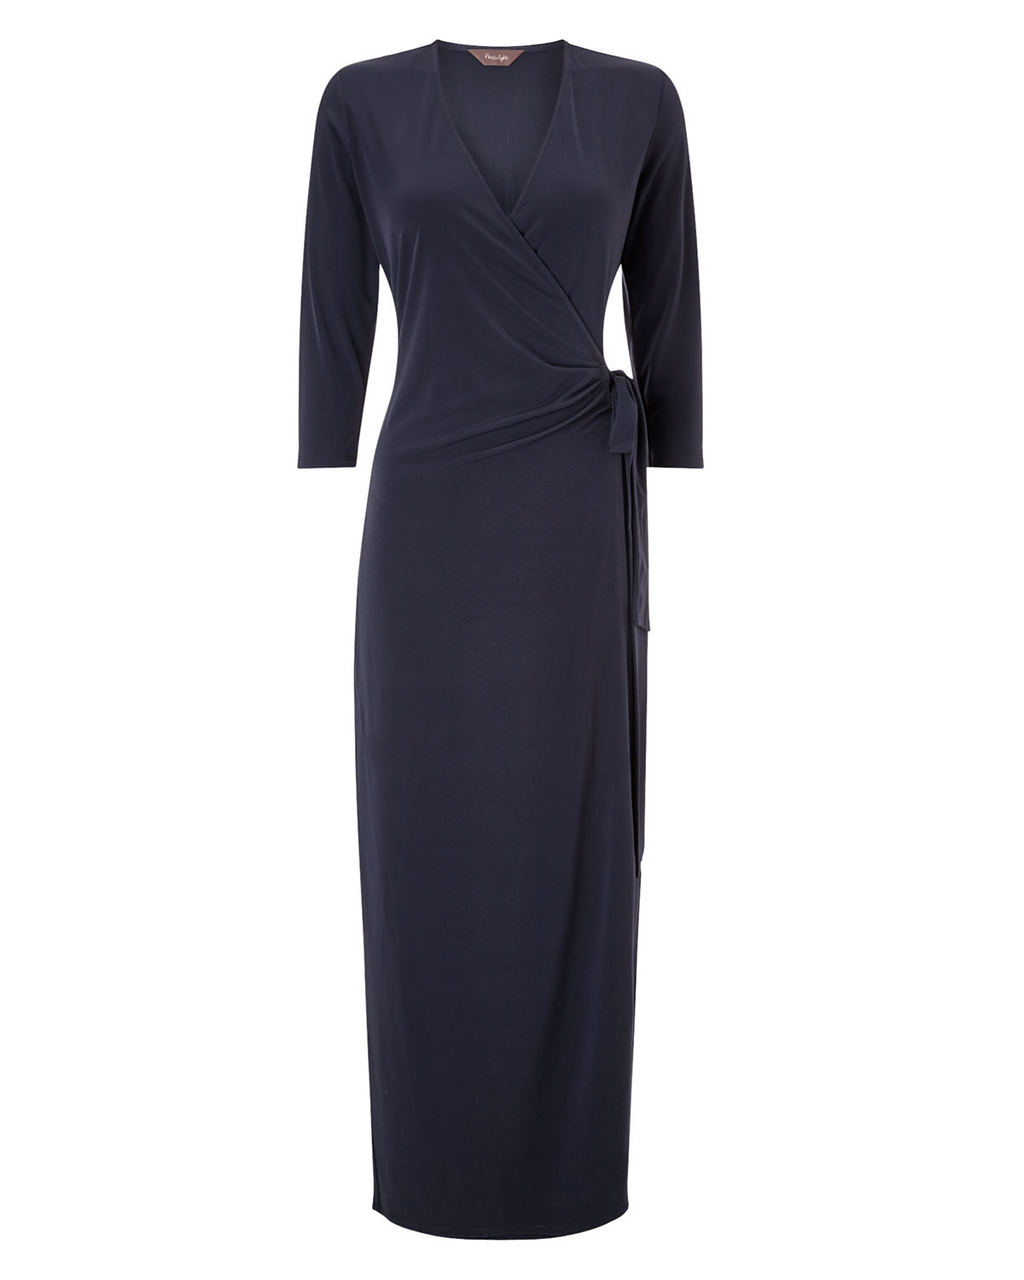 Eleri Wrap Maxi - style: faux wrap/wrap; neckline: low v-neck; pattern: plain; length: ankle length; waist detail: flattering waist detail; predominant colour: navy; fit: body skimming; occasions: occasion; sleeve length: 3/4 length; sleeve style: standard; pattern type: fabric; texture group: jersey - stretchy/drapey; season: s/s 2015; wardrobe: event